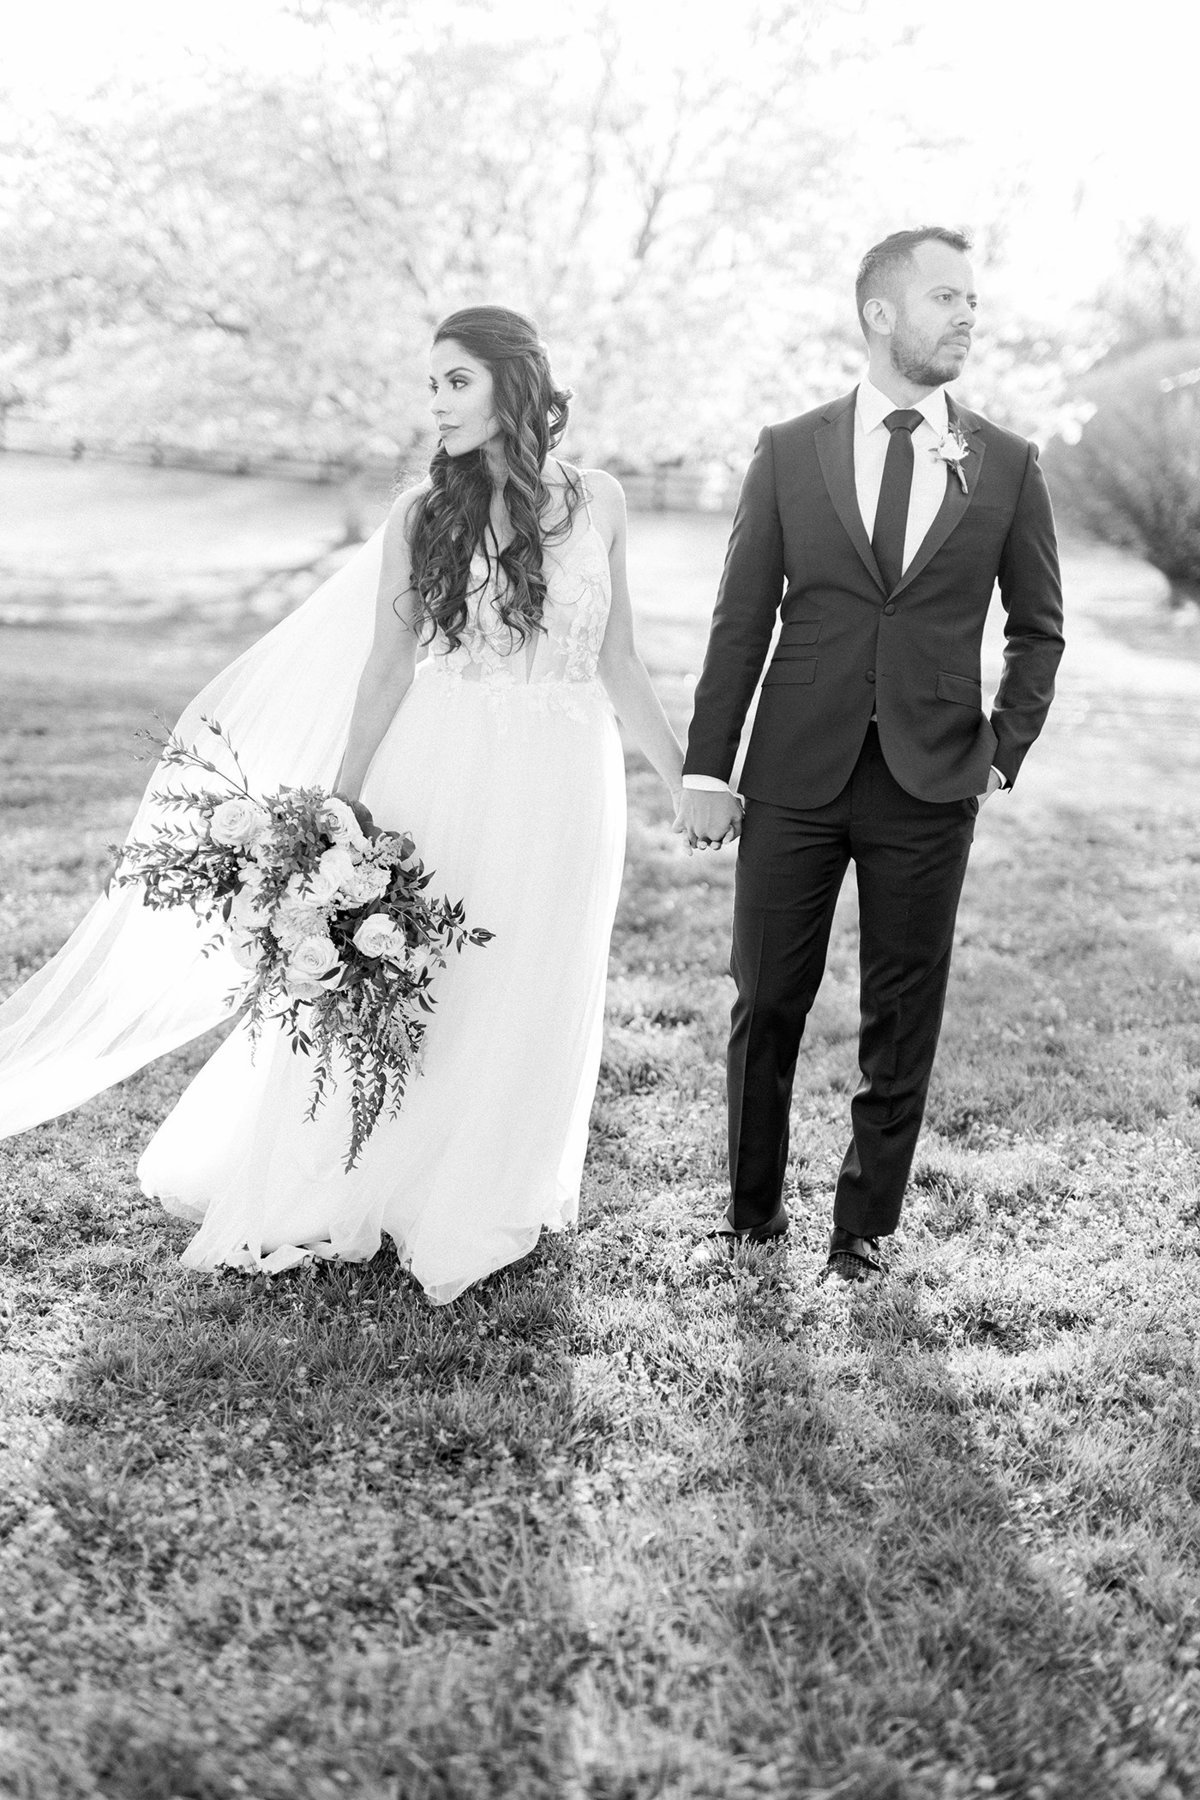 Cedarmont Nashville Editorial - Sarah Sunstrom Photography - Fine Art Wedding Photographer - 50